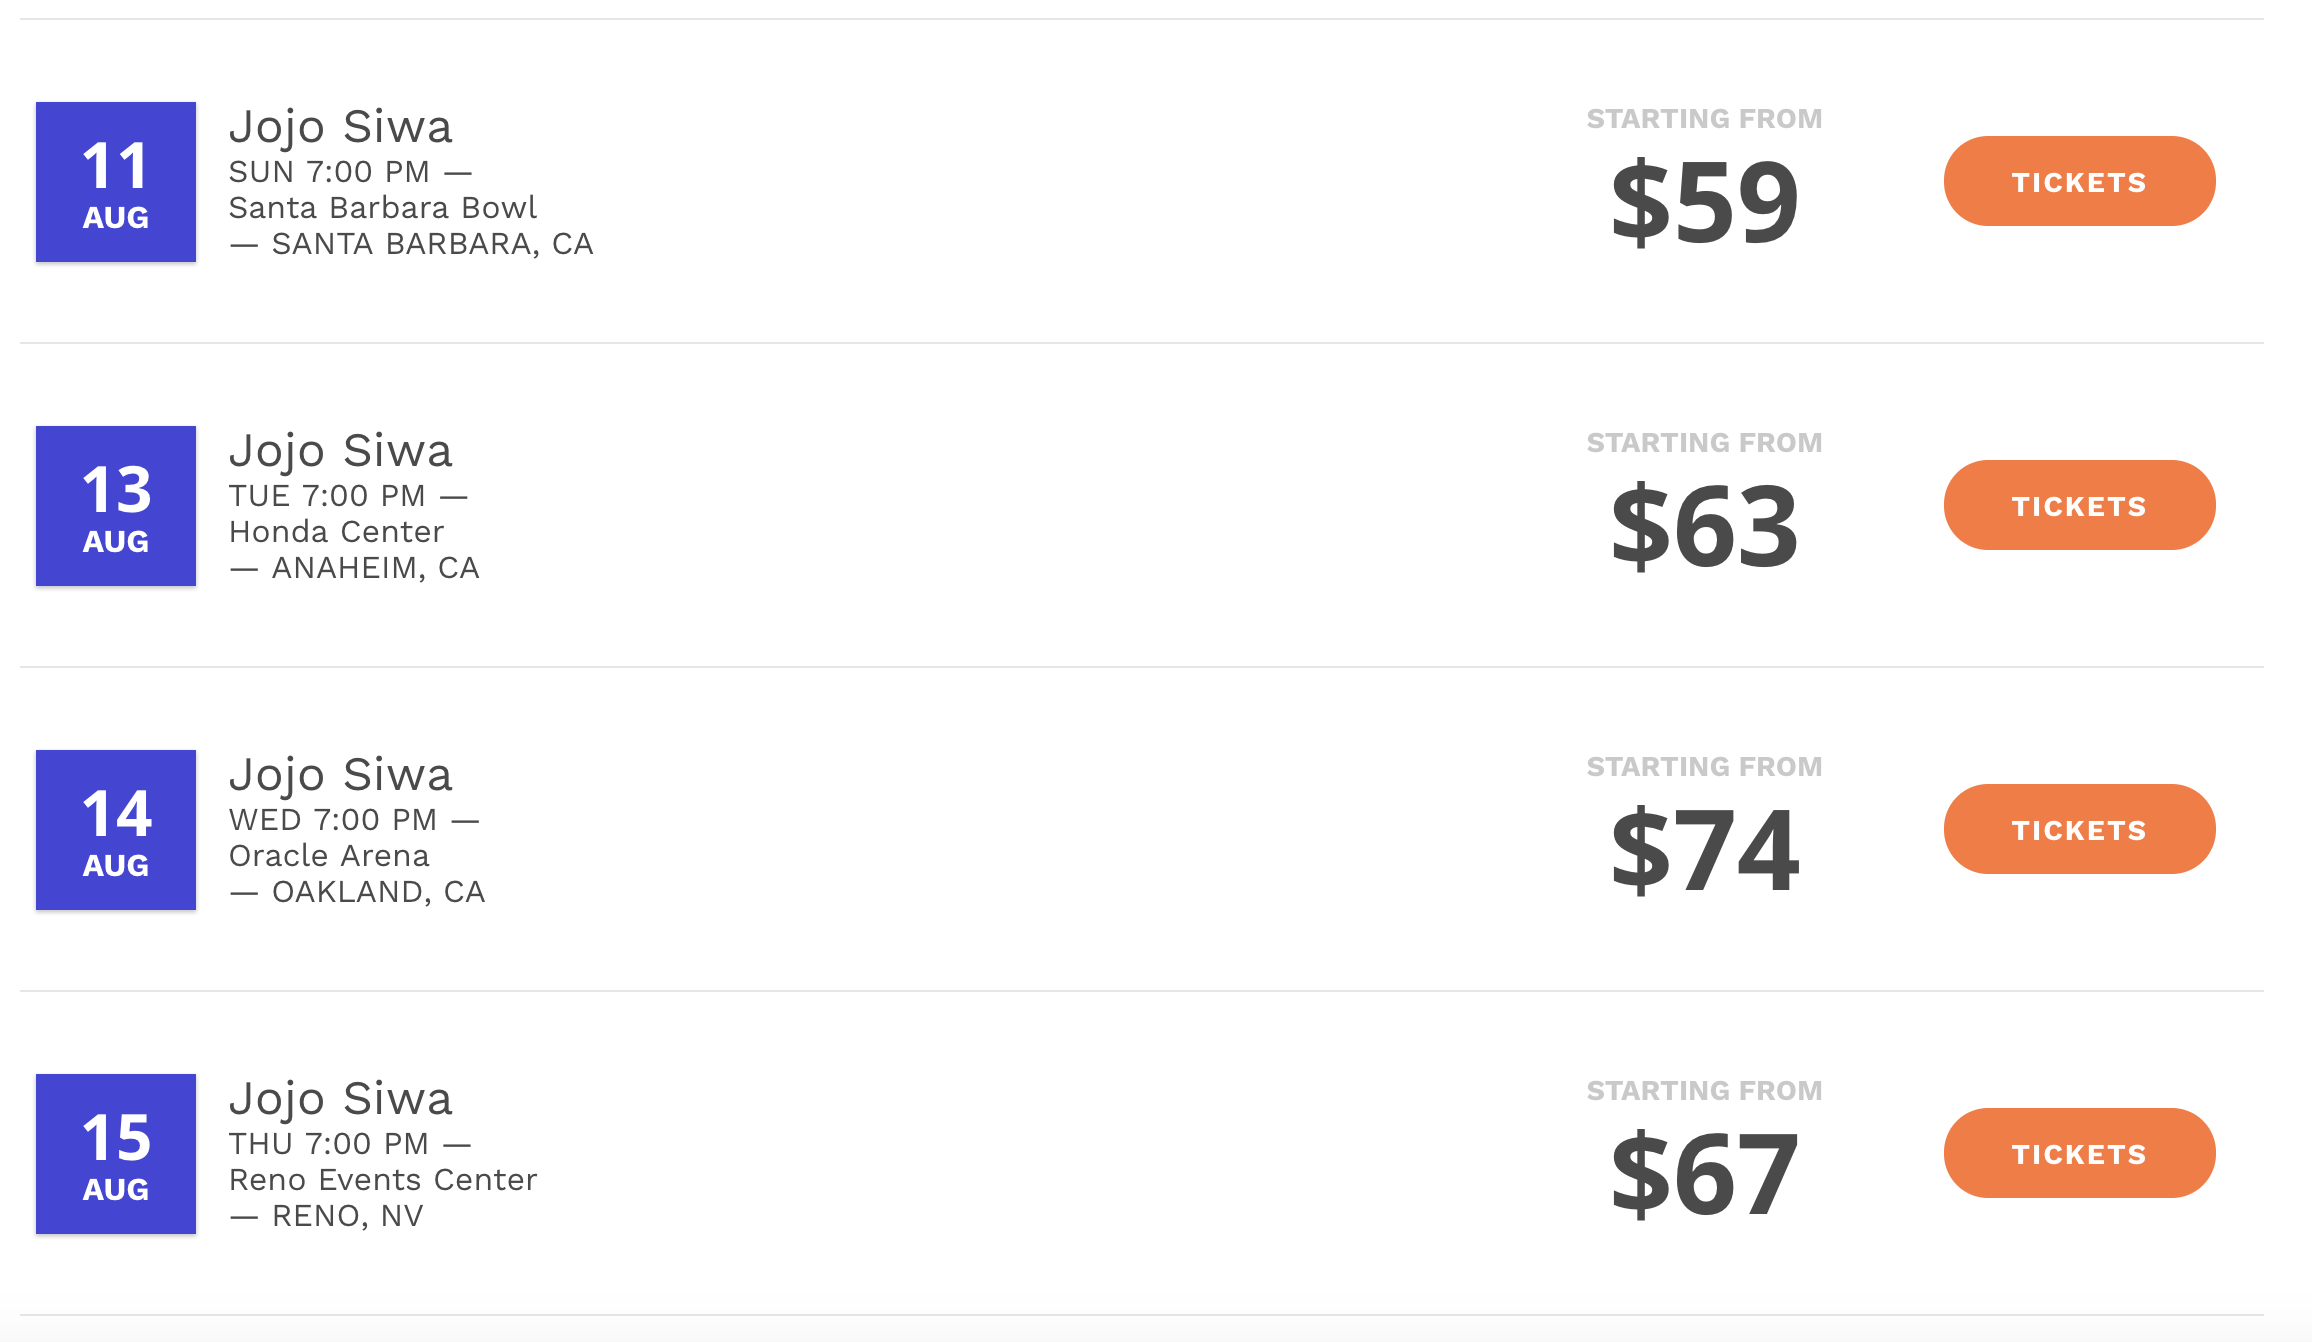 How To Find Cheapest Tickets For JoJo Siwa D R E A M  Tour